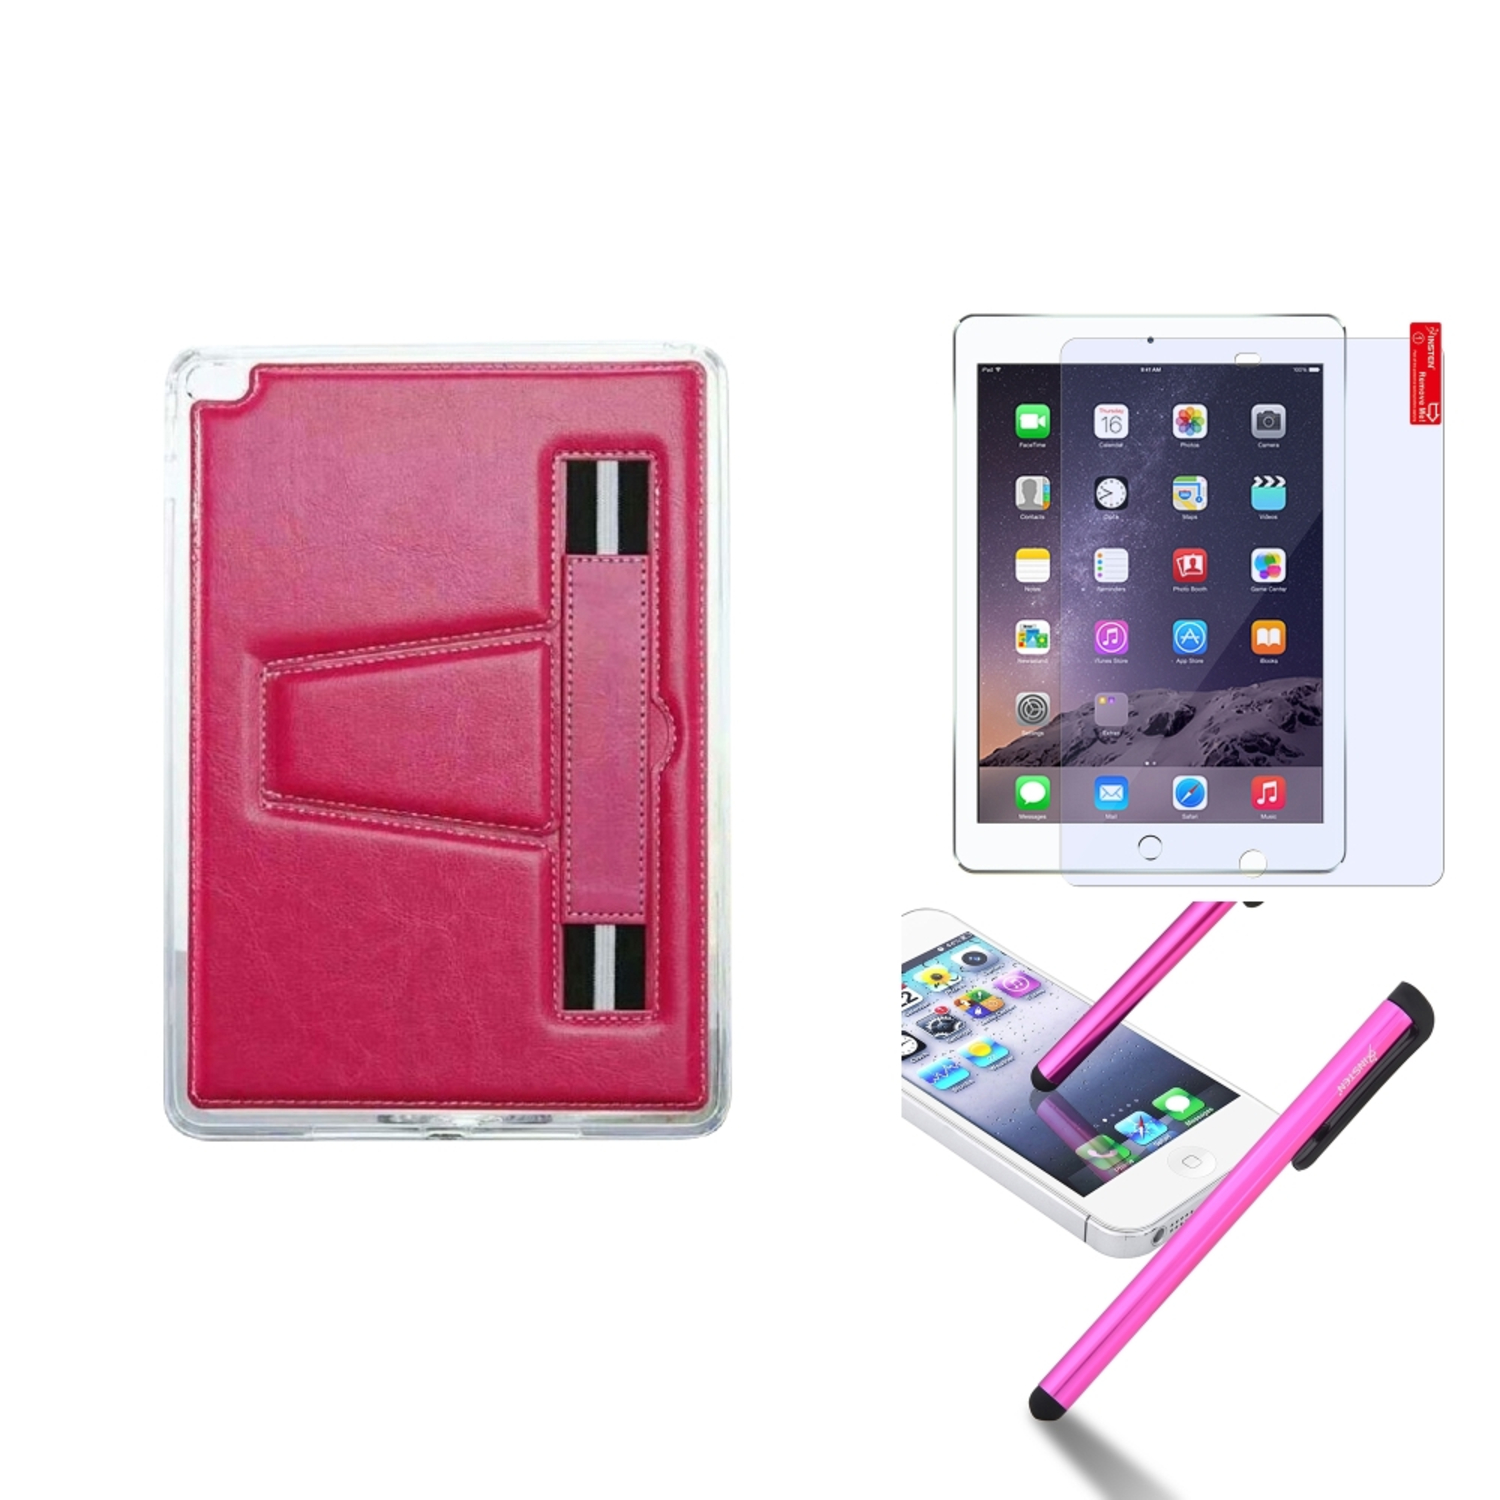 Insten For iPad Air 2 TPU Gel Rubber Soft Skin Case Cover w/ Stand+Protector+Pen Hot Pink